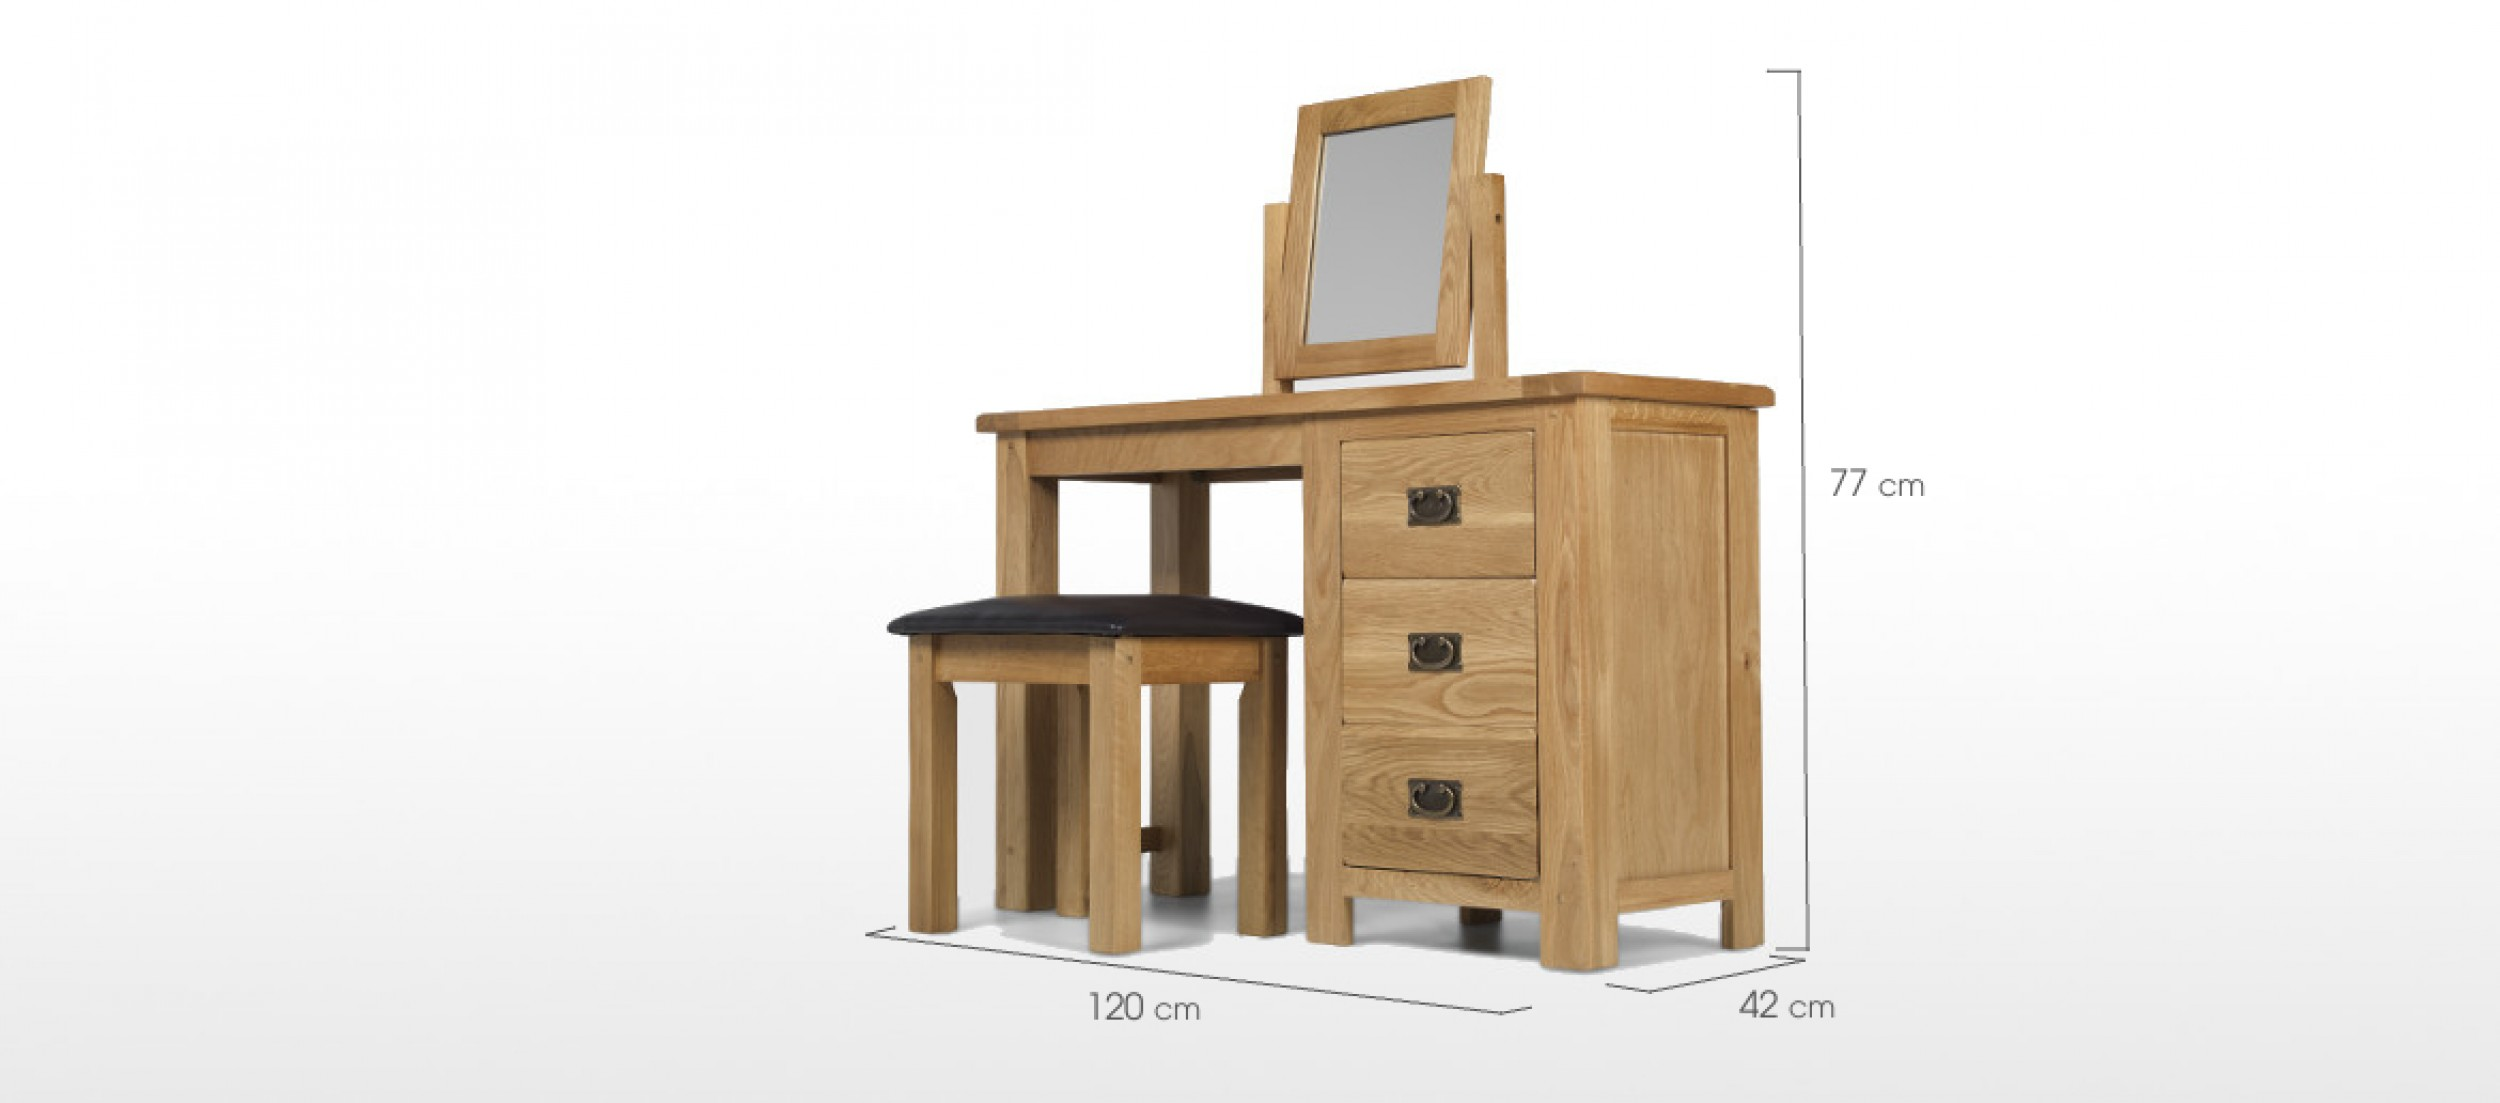 Dimension Dressing Rustic Oak Dressing Table Set